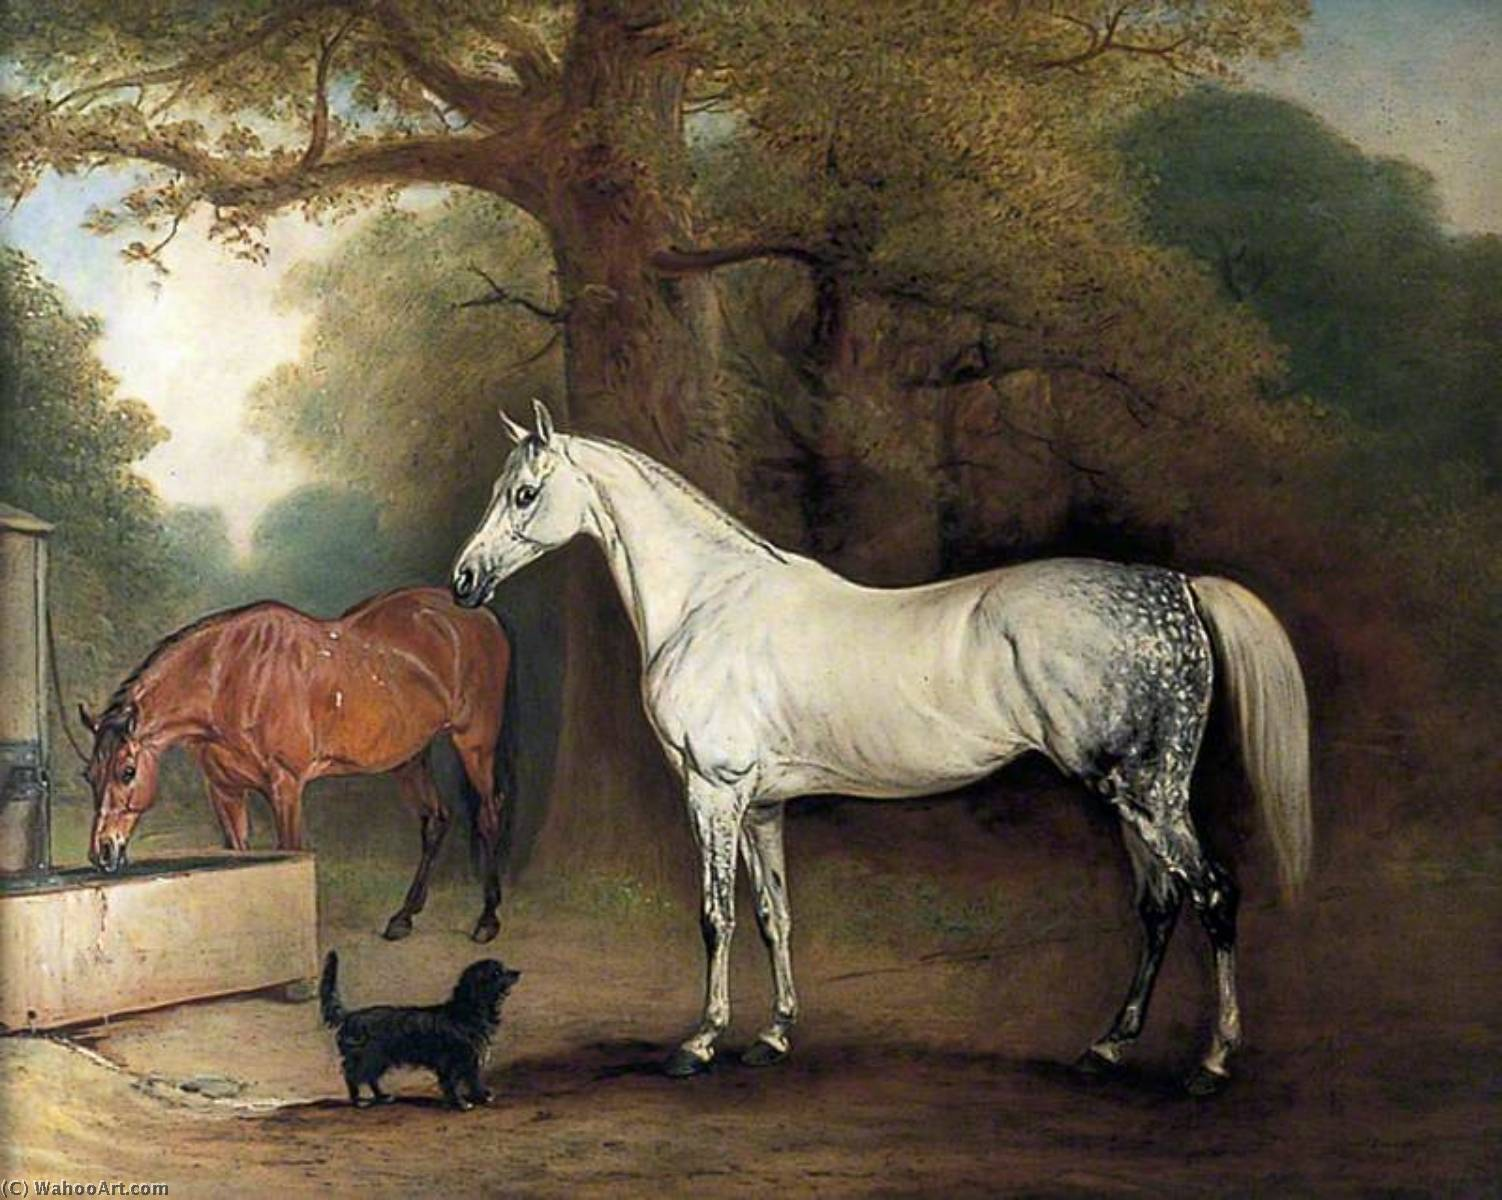 Two Horses and a Dog, 1845 by John E Ferneley I (1782-1860) | Famous Paintings Reproductions | WahooArt.com